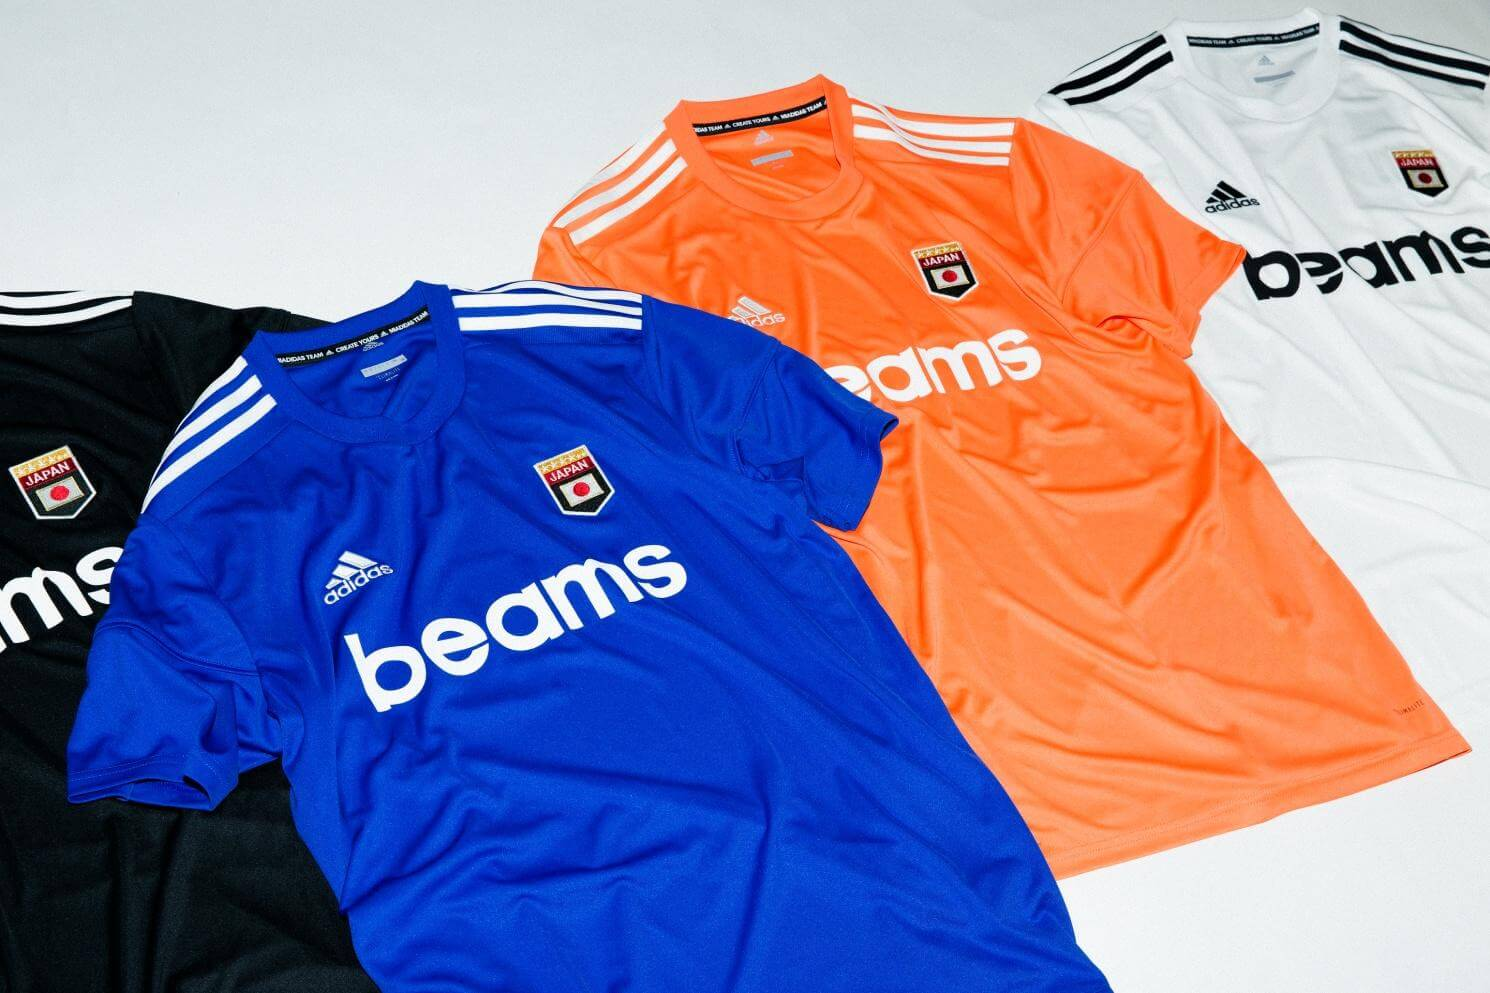 quality design f9bcd 86067 adidas & BEAMS Release Collaborative World Cup Uniforms ...